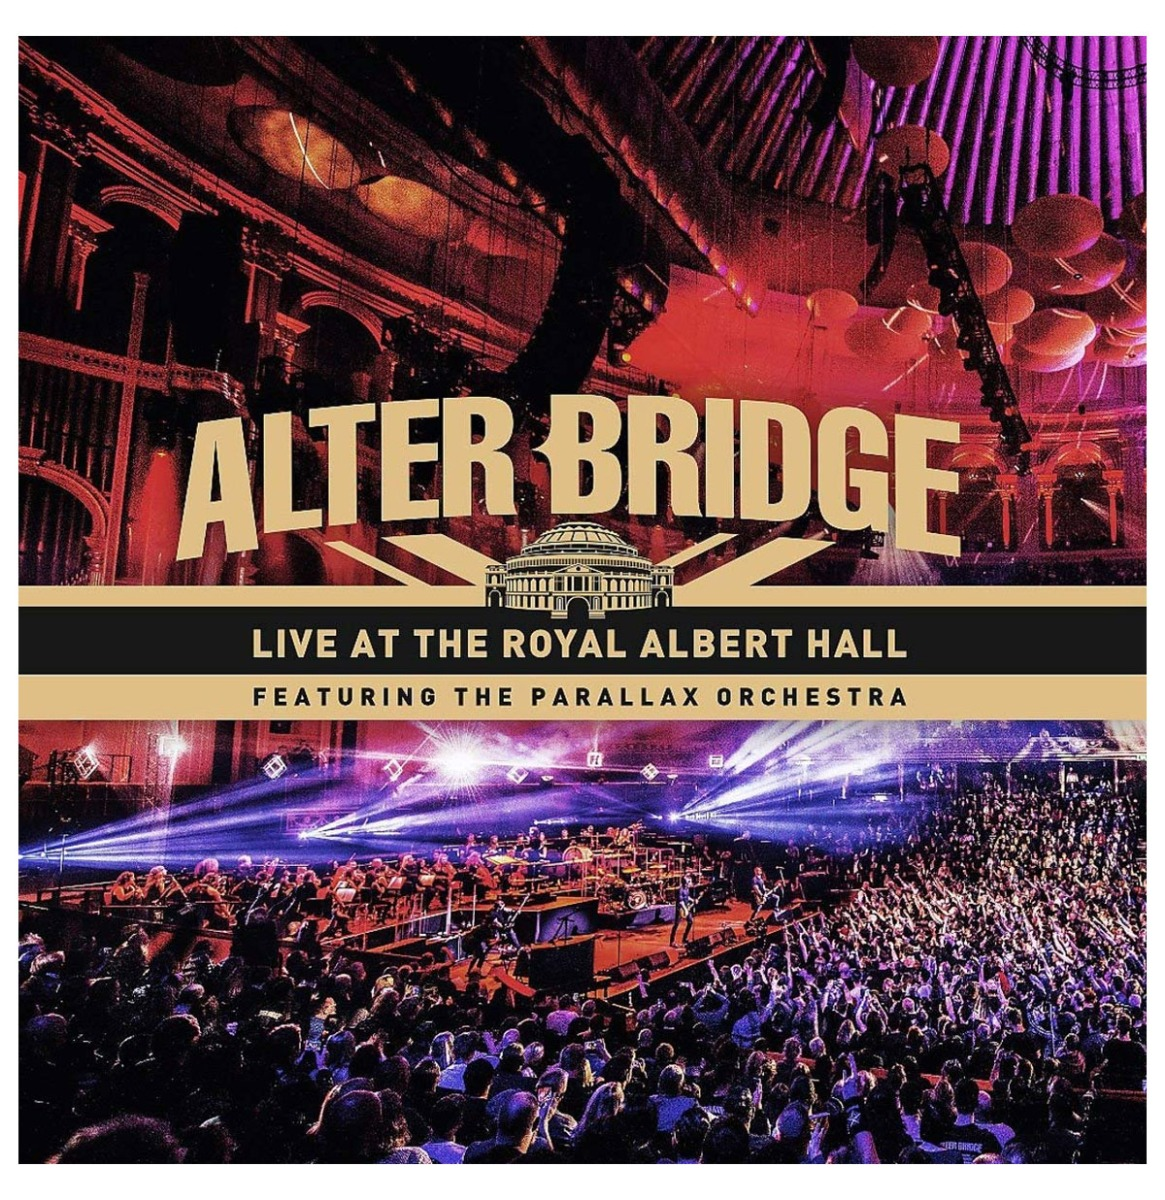 Alter Bridge Featuring The Parallax Orchestra - Live At The Royal Albert Hall 3-LP